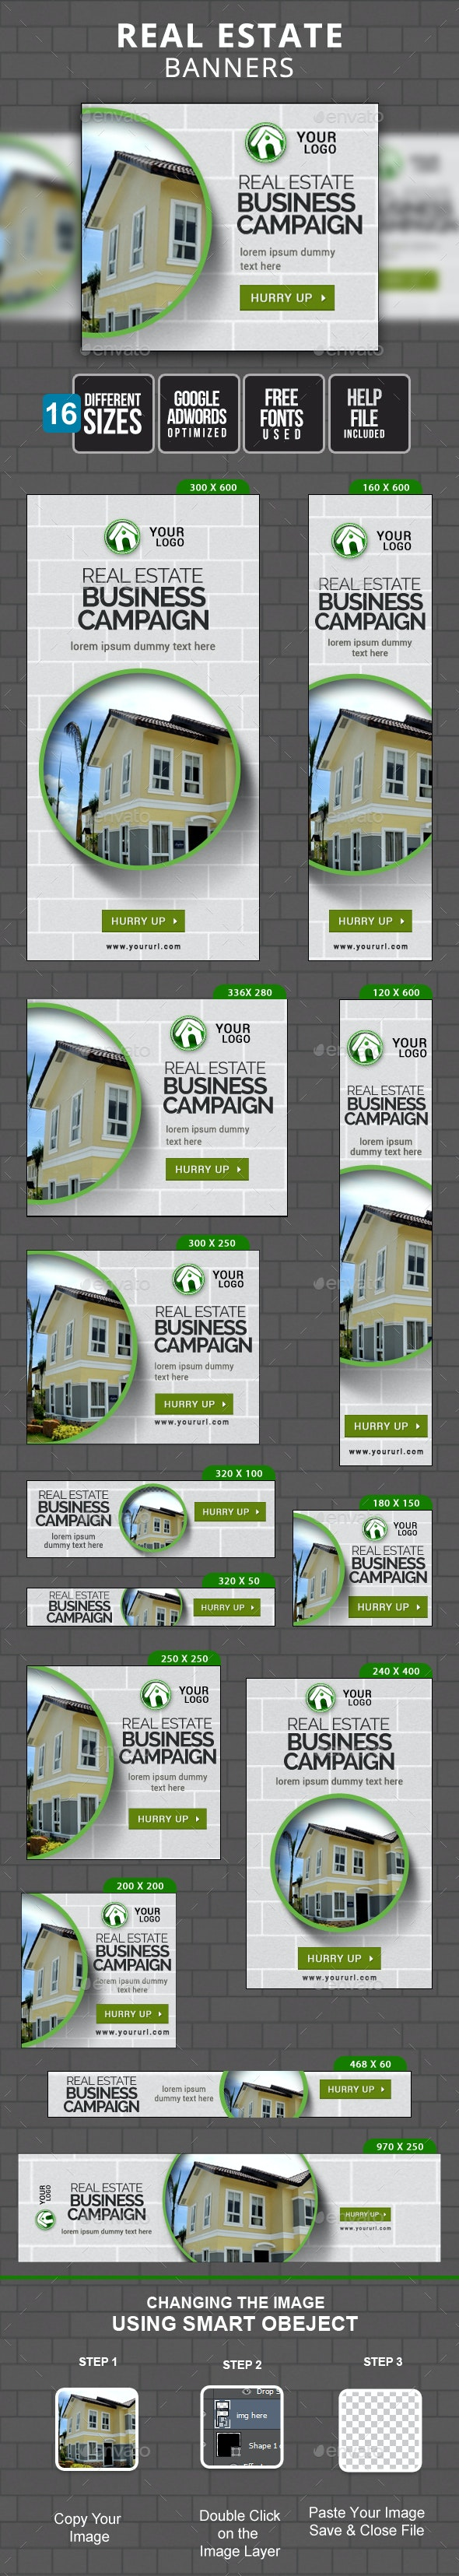 Real Estate Banners - Banners & Ads Web Elements